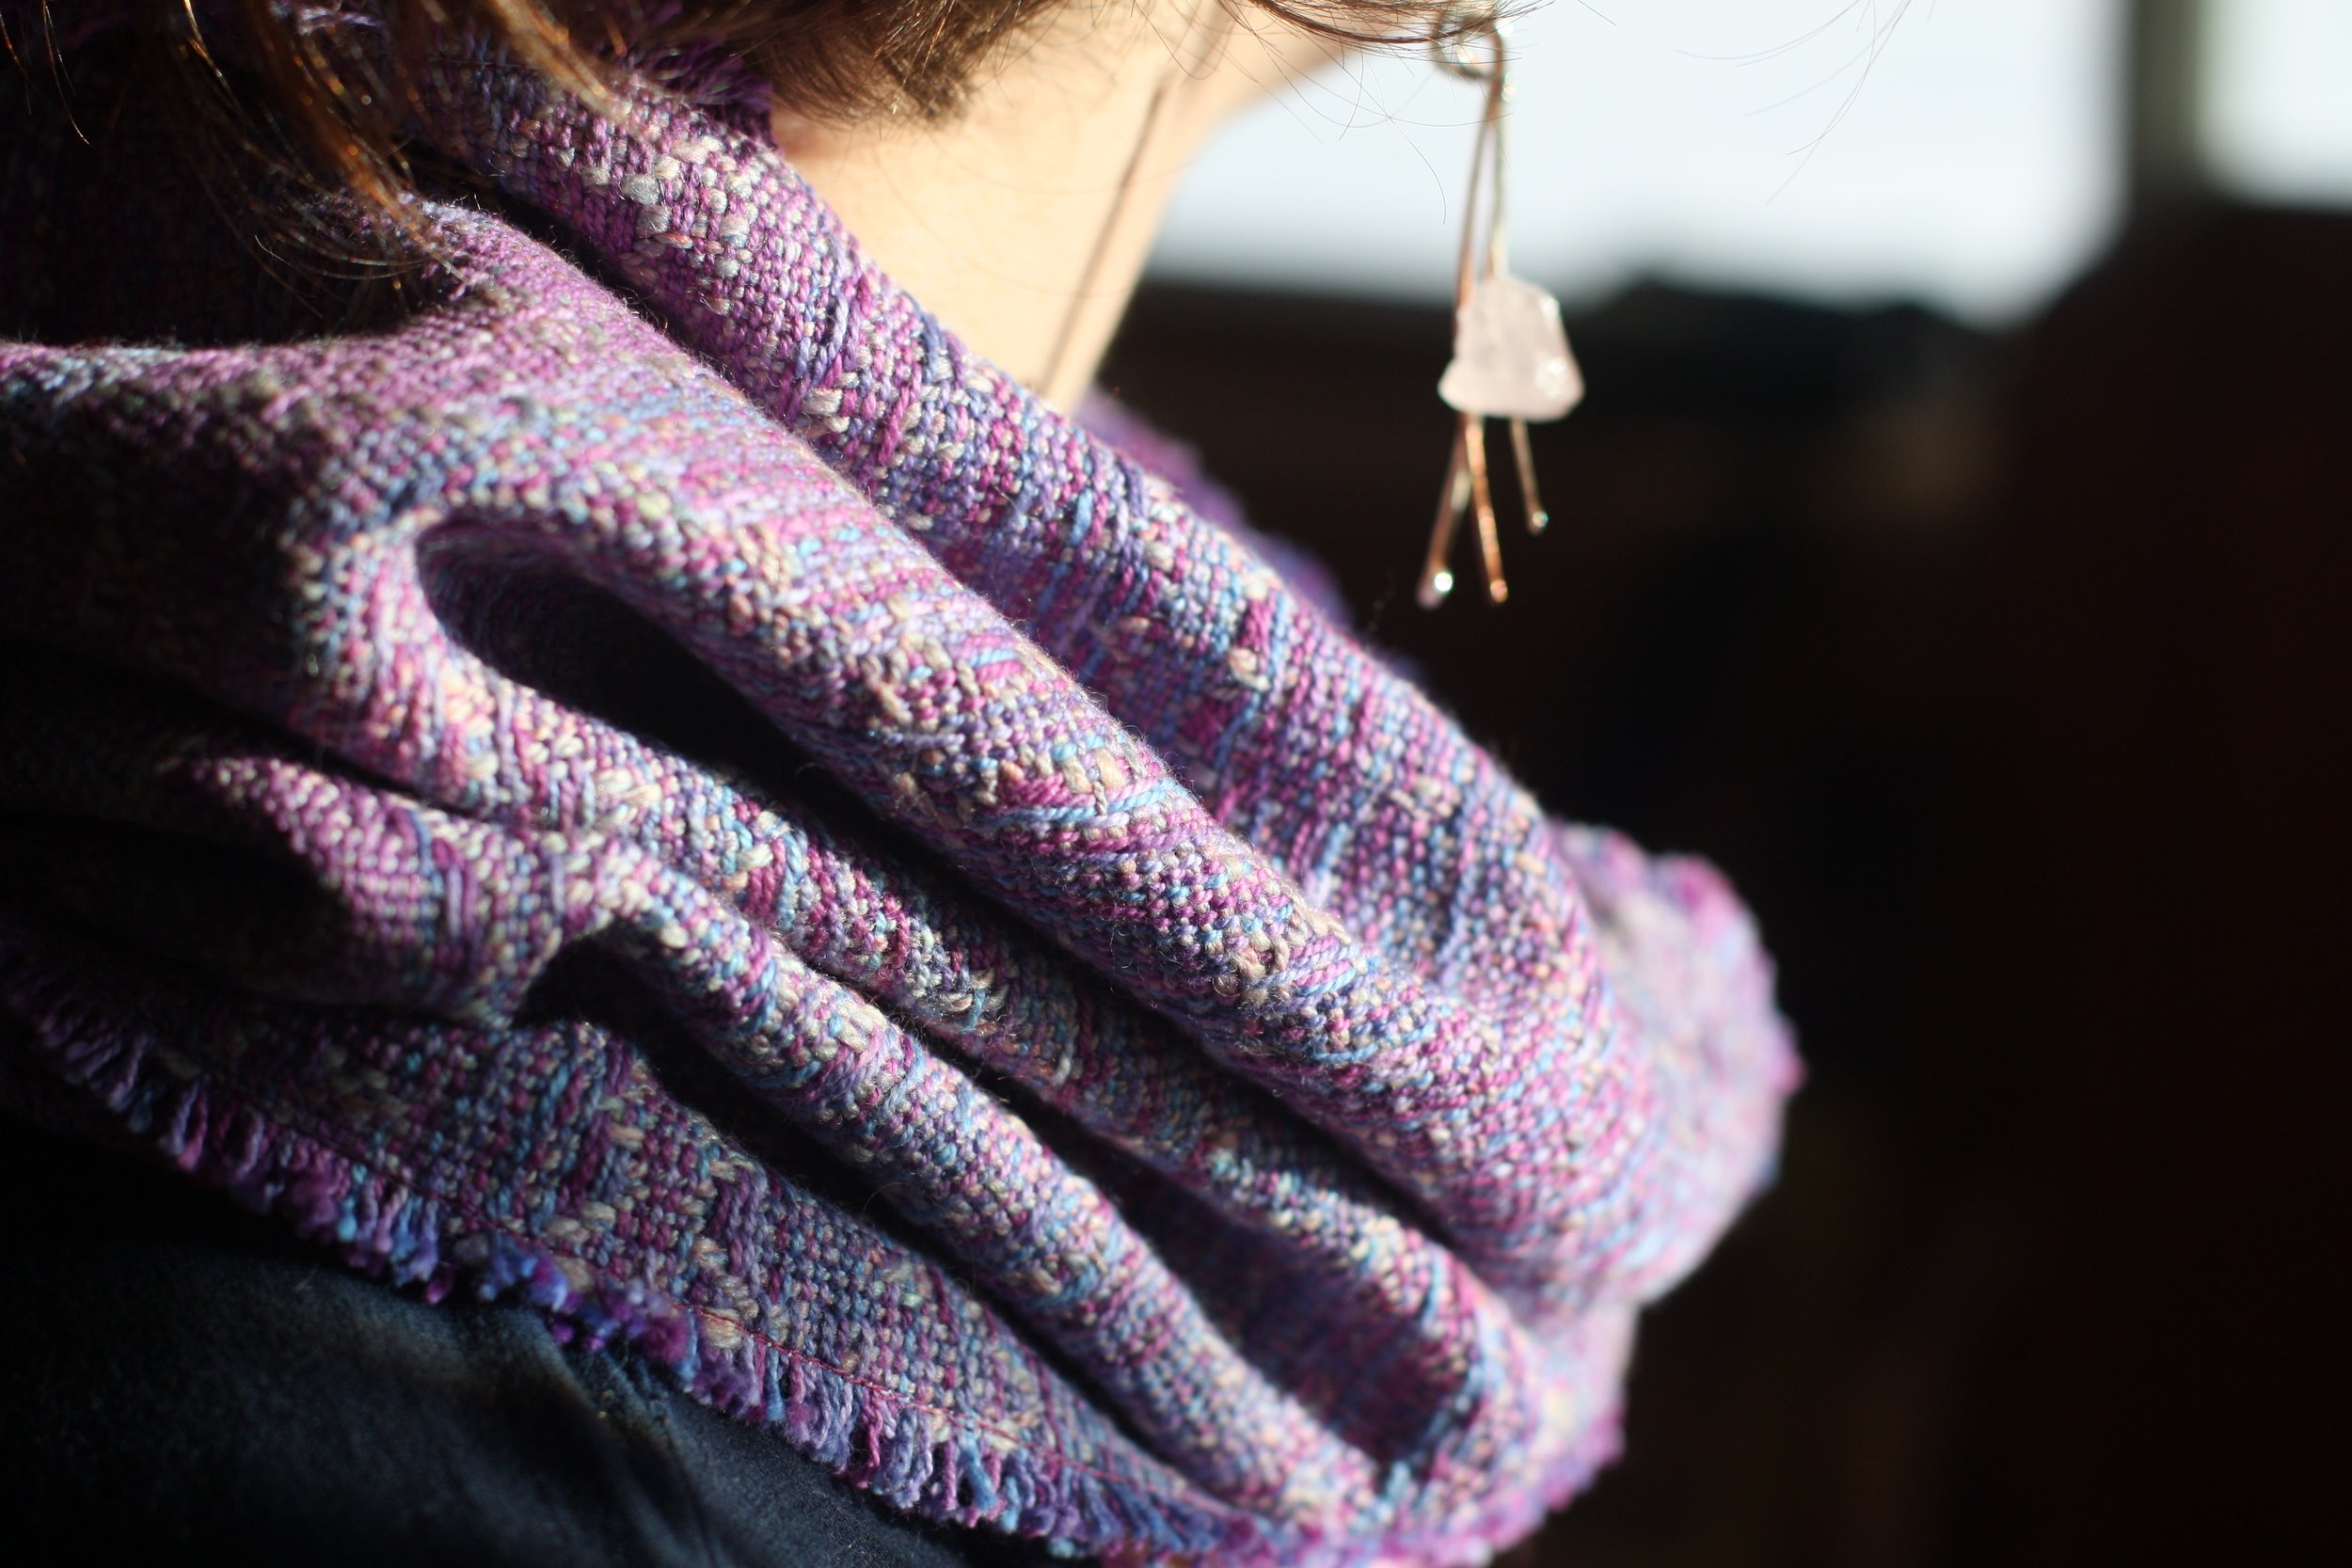 Handwoven cowl with handspun weft was auctioned to raise funds for the ACLU | 14 Mile Farm Handweaving and Homesteading